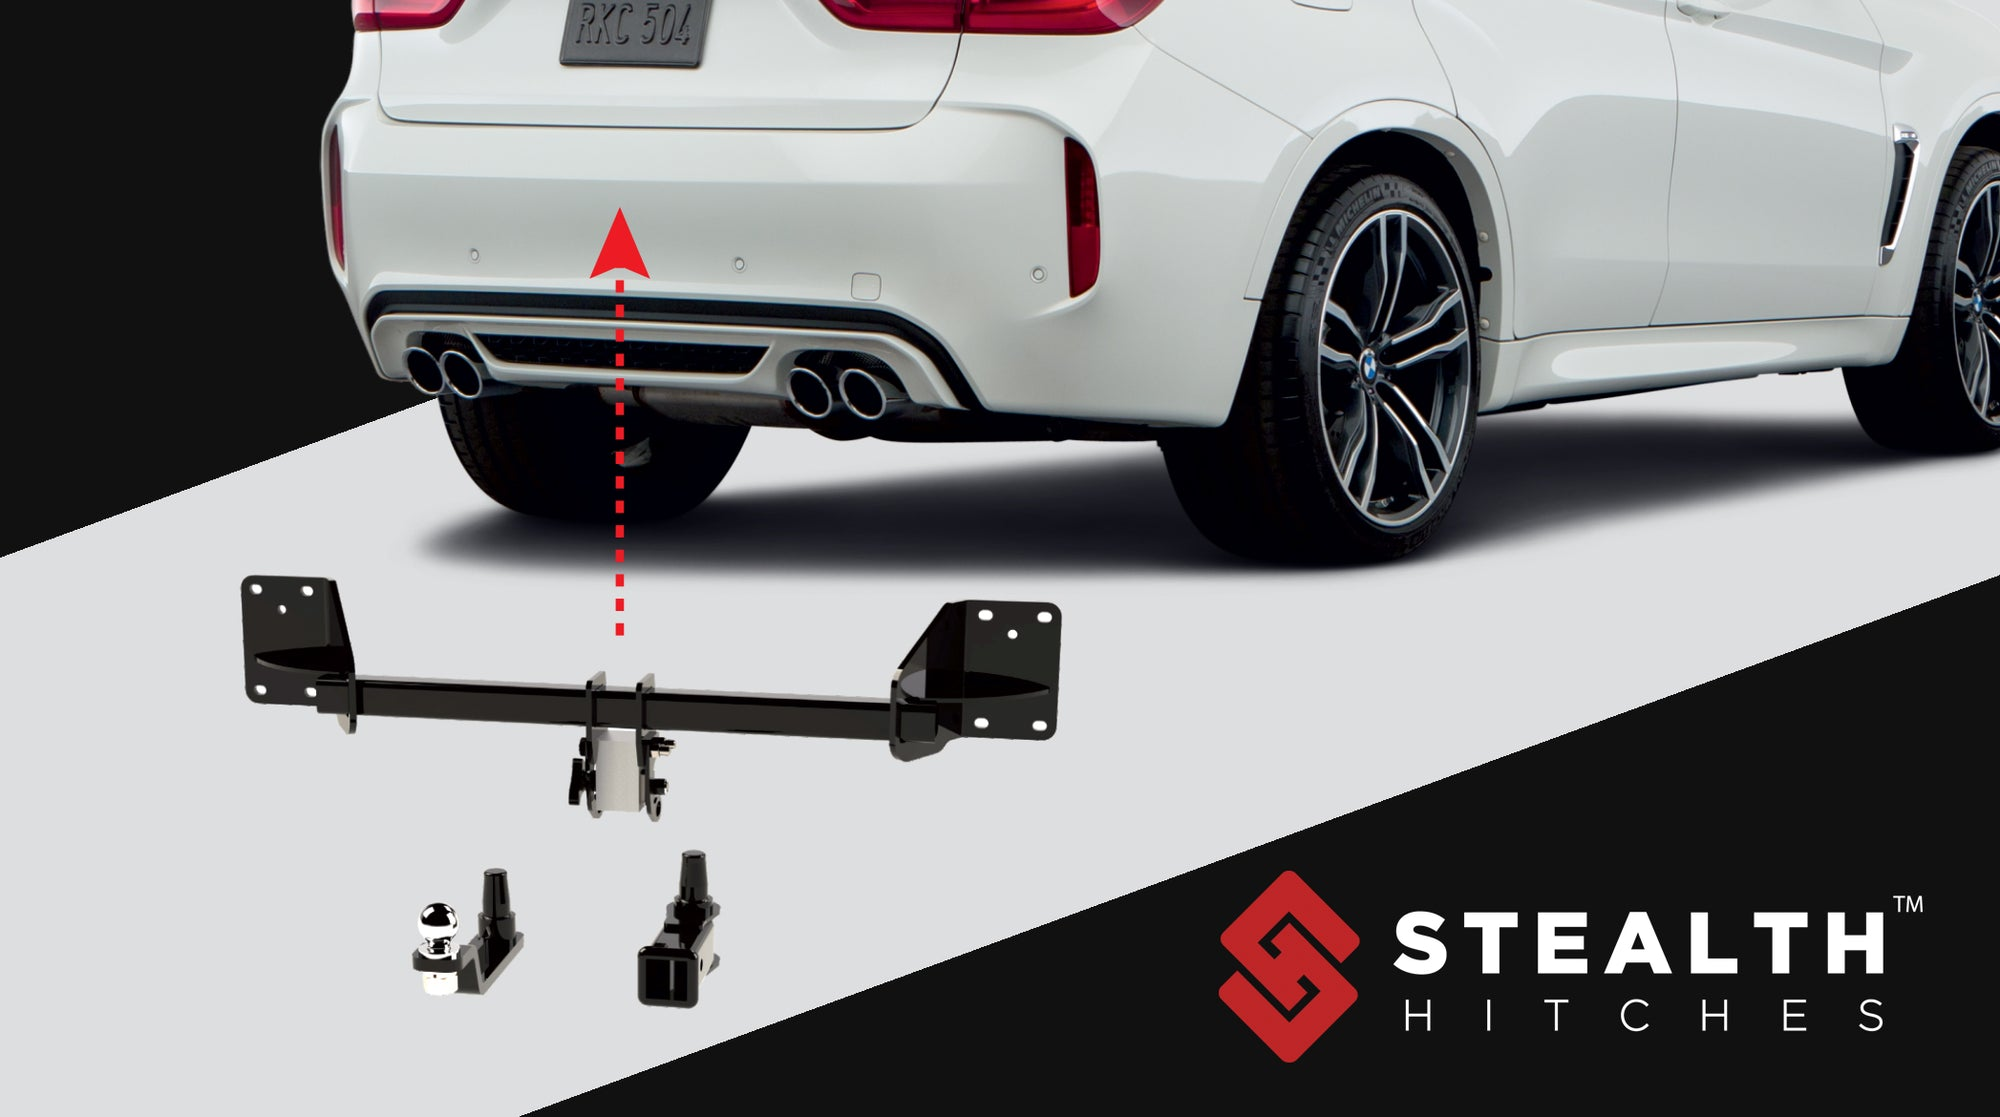 Audi A3 Hitch Made To Be Hidden Tailored Trailer For Hang Wiring Harness 2017 Present